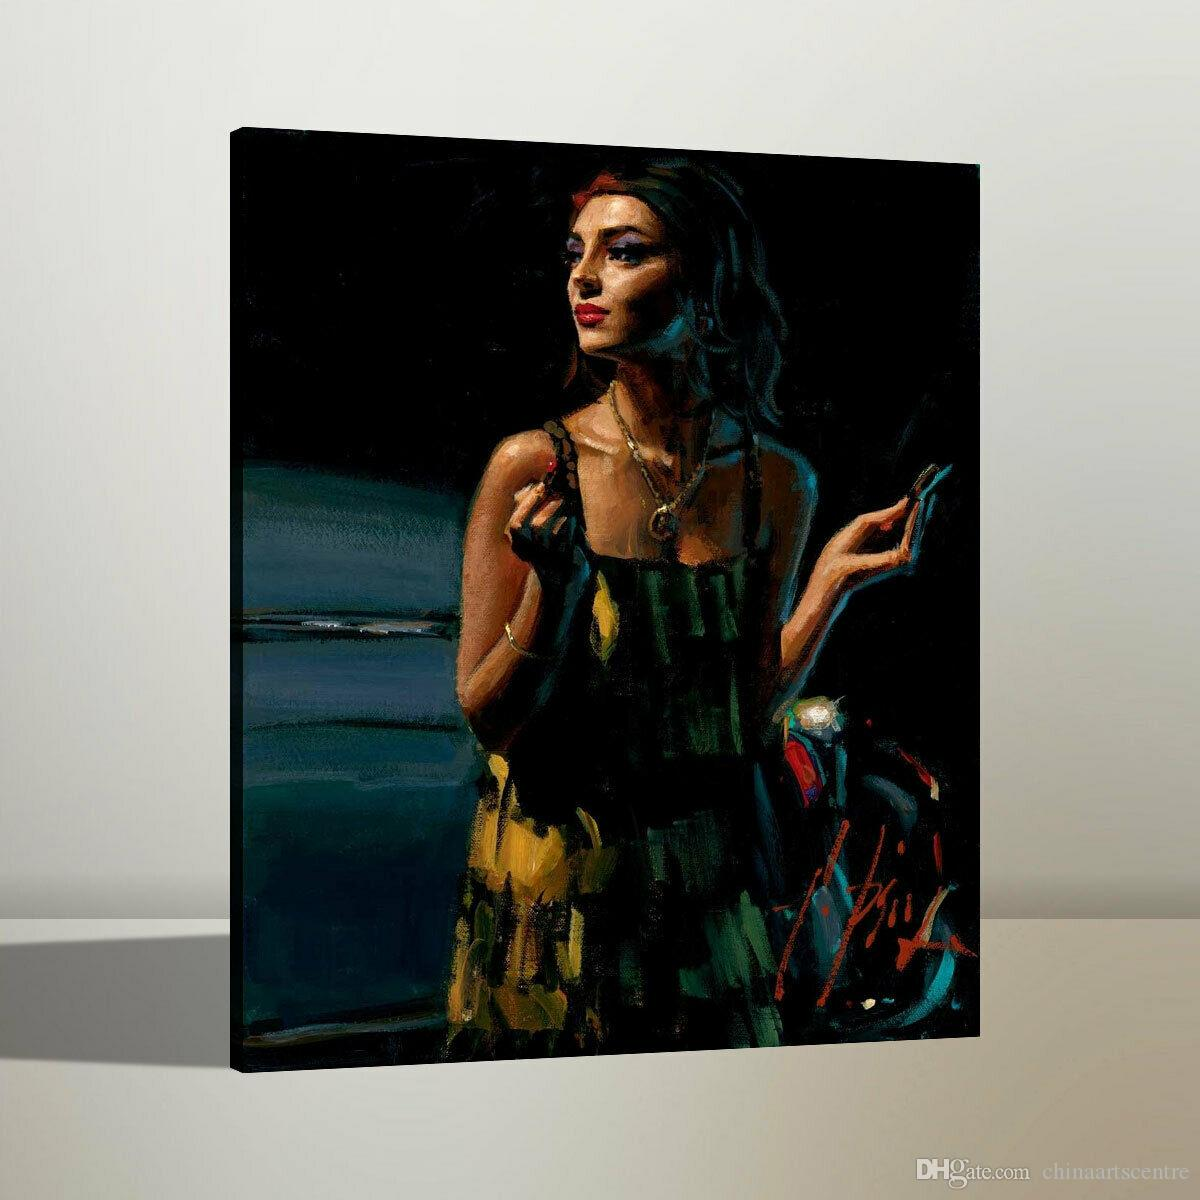 Fabian Perez Glamour VII High Quality Handpainted & HD Print Figure Portrait Art Oil Painting On Canvas Wall Art Home Office Deco p26